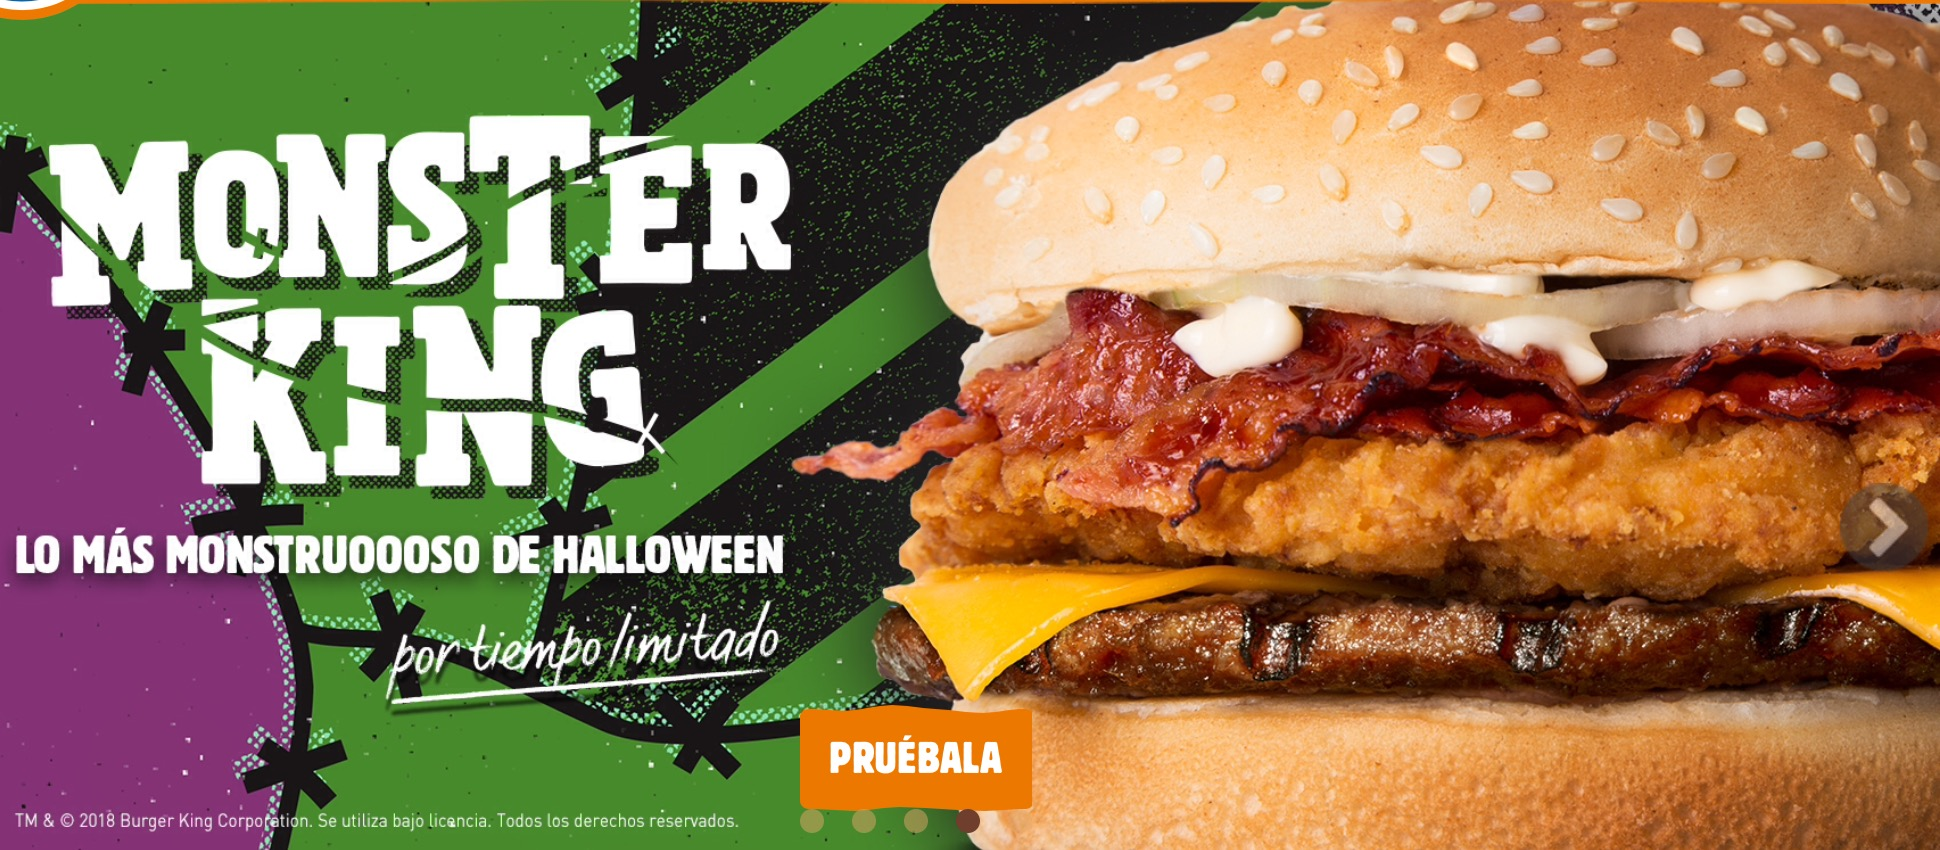 Burger King Monster King